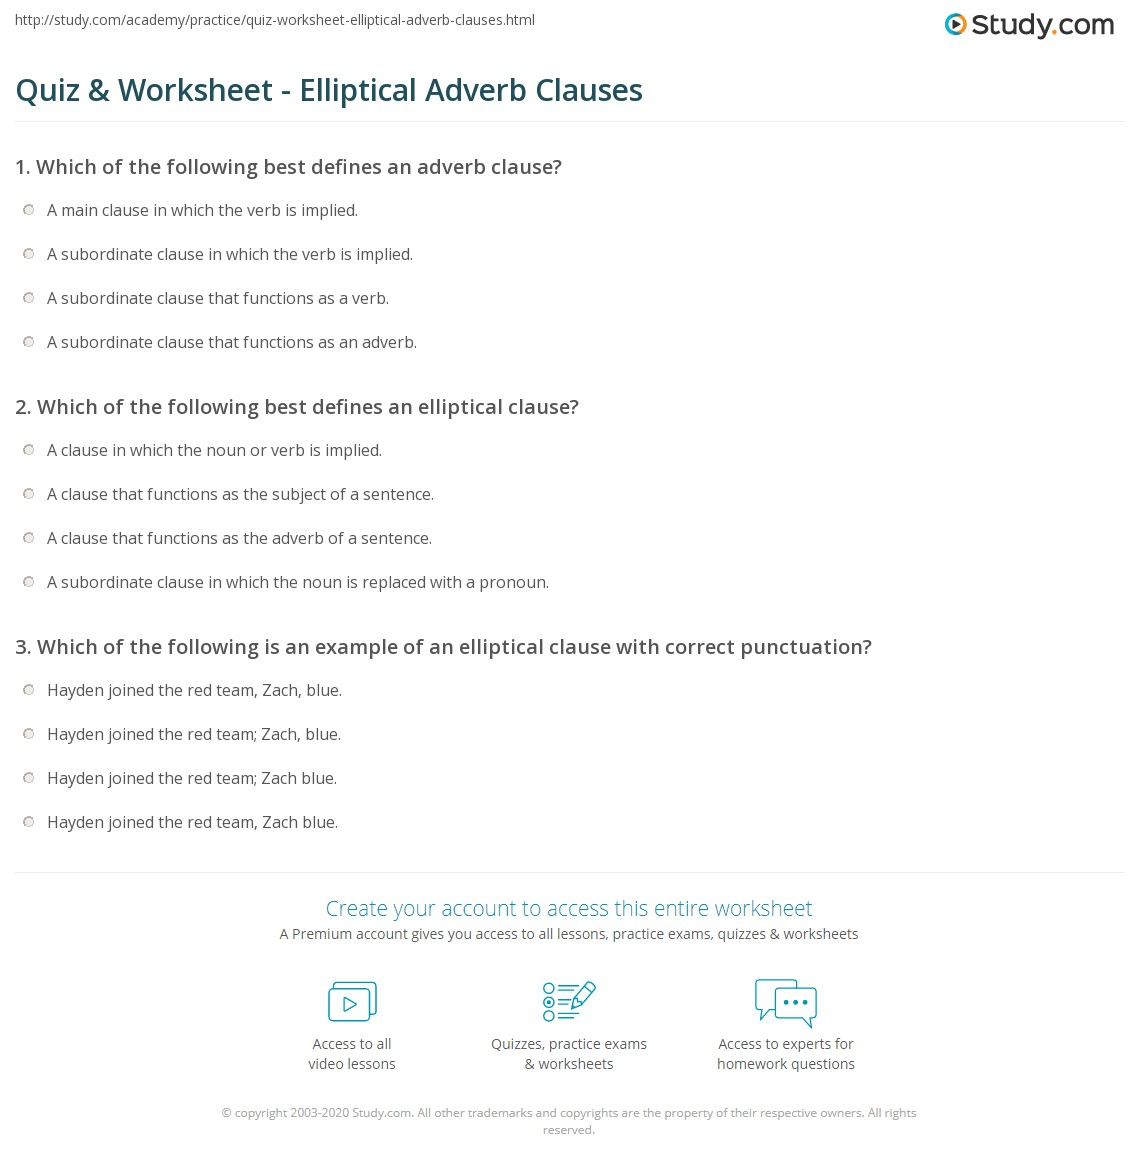 Quiz Worksheet Elliptical Adverb Clauses – Adverb Clauses Worksheet